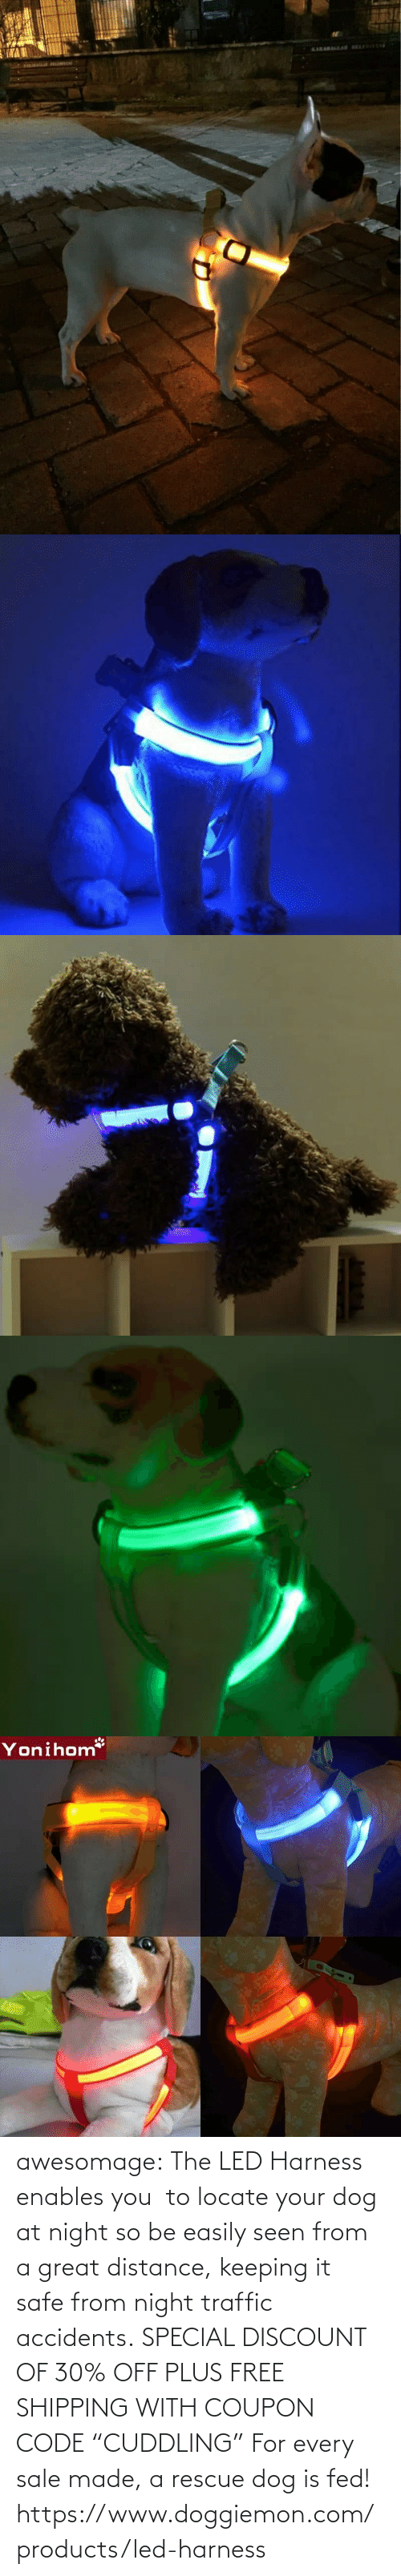 "Distance: awesomage:   The LED Harness enables you  to locate your dog at night so be easily seen from a great distance, keeping it safe from night traffic accidents. SPECIAL DISCOUNT OF 30% OFF PLUS FREE SHIPPING WITH COUPON CODE ""CUDDLING"" For every sale made, a rescue dog is fed!   https://www.doggiemon.com/products/led-harness"